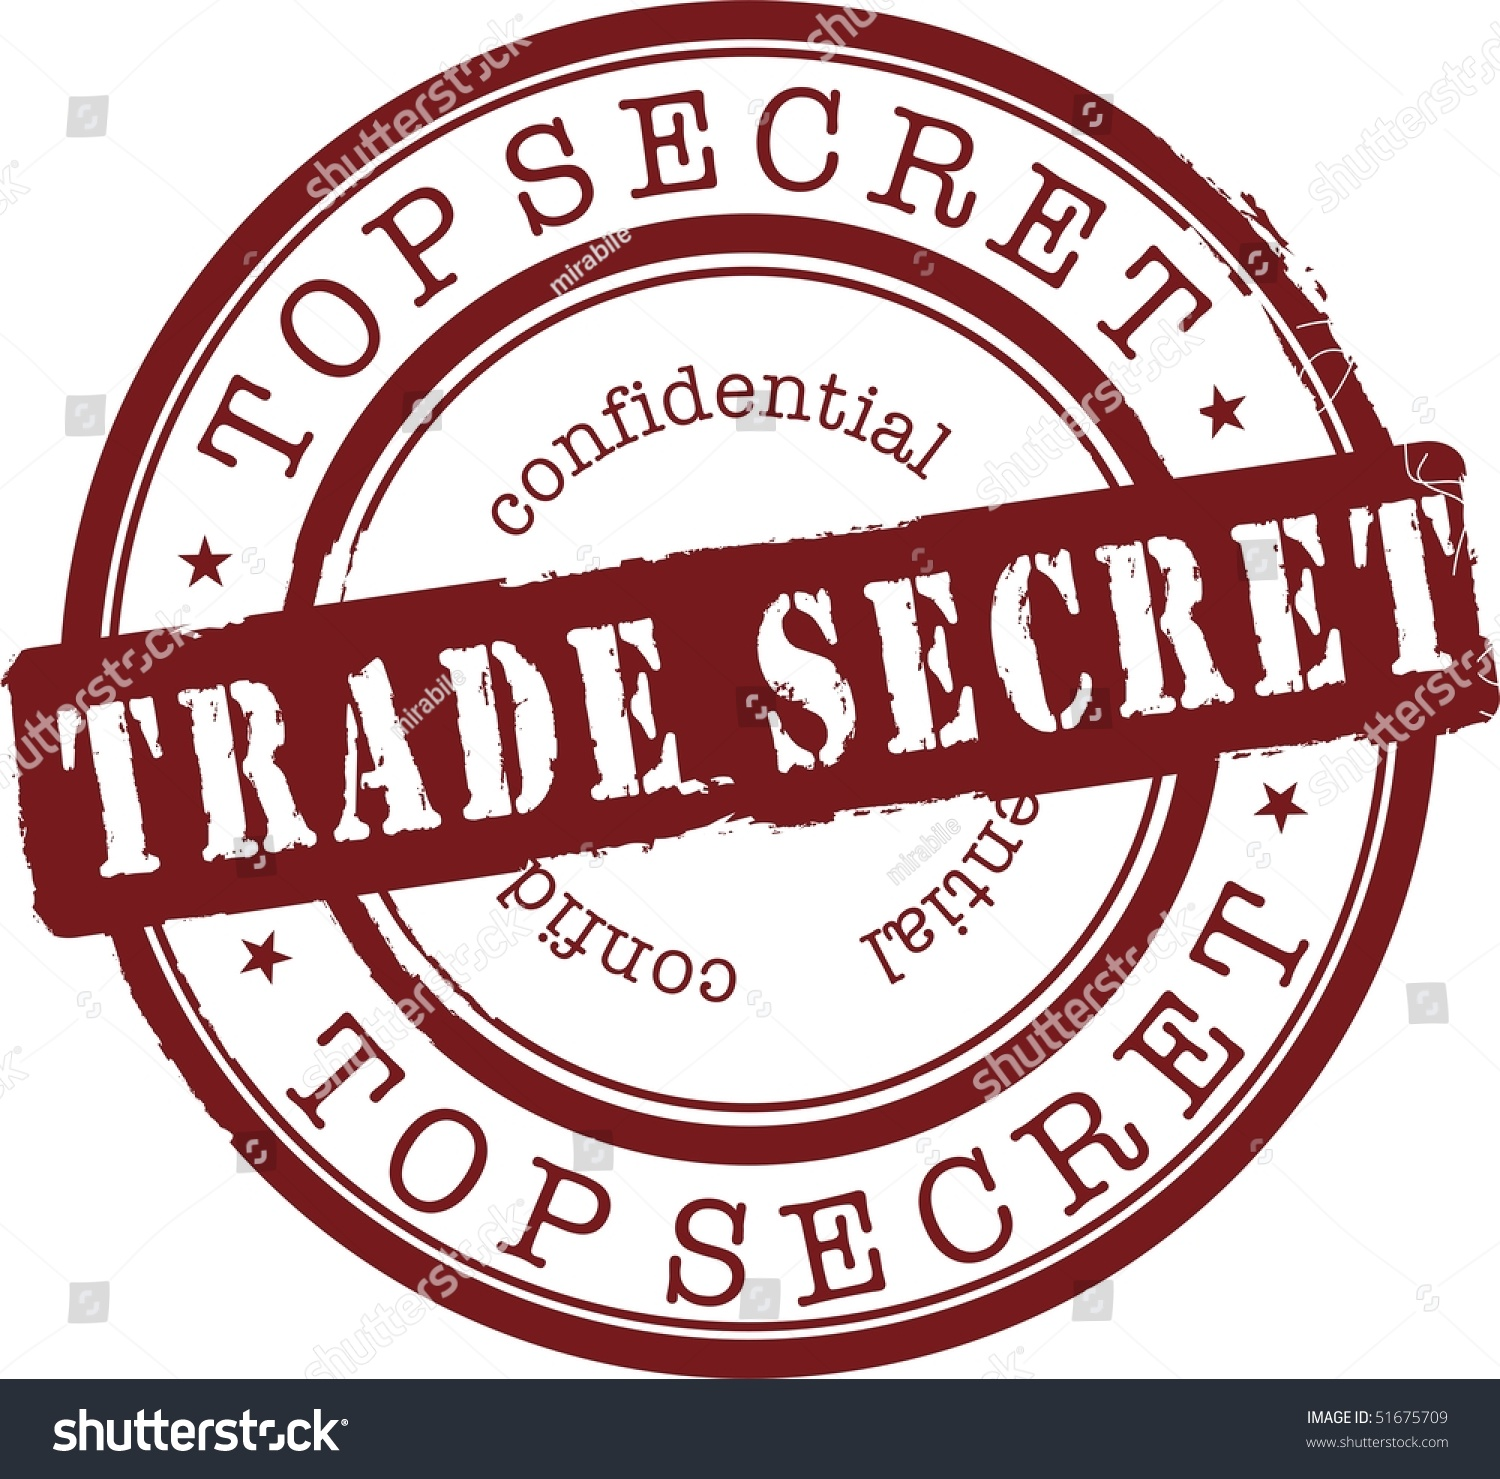 Trade Secret Stamp With Red Ink. Isolated Stock Vector Illustration 51675709 : Shutterstock